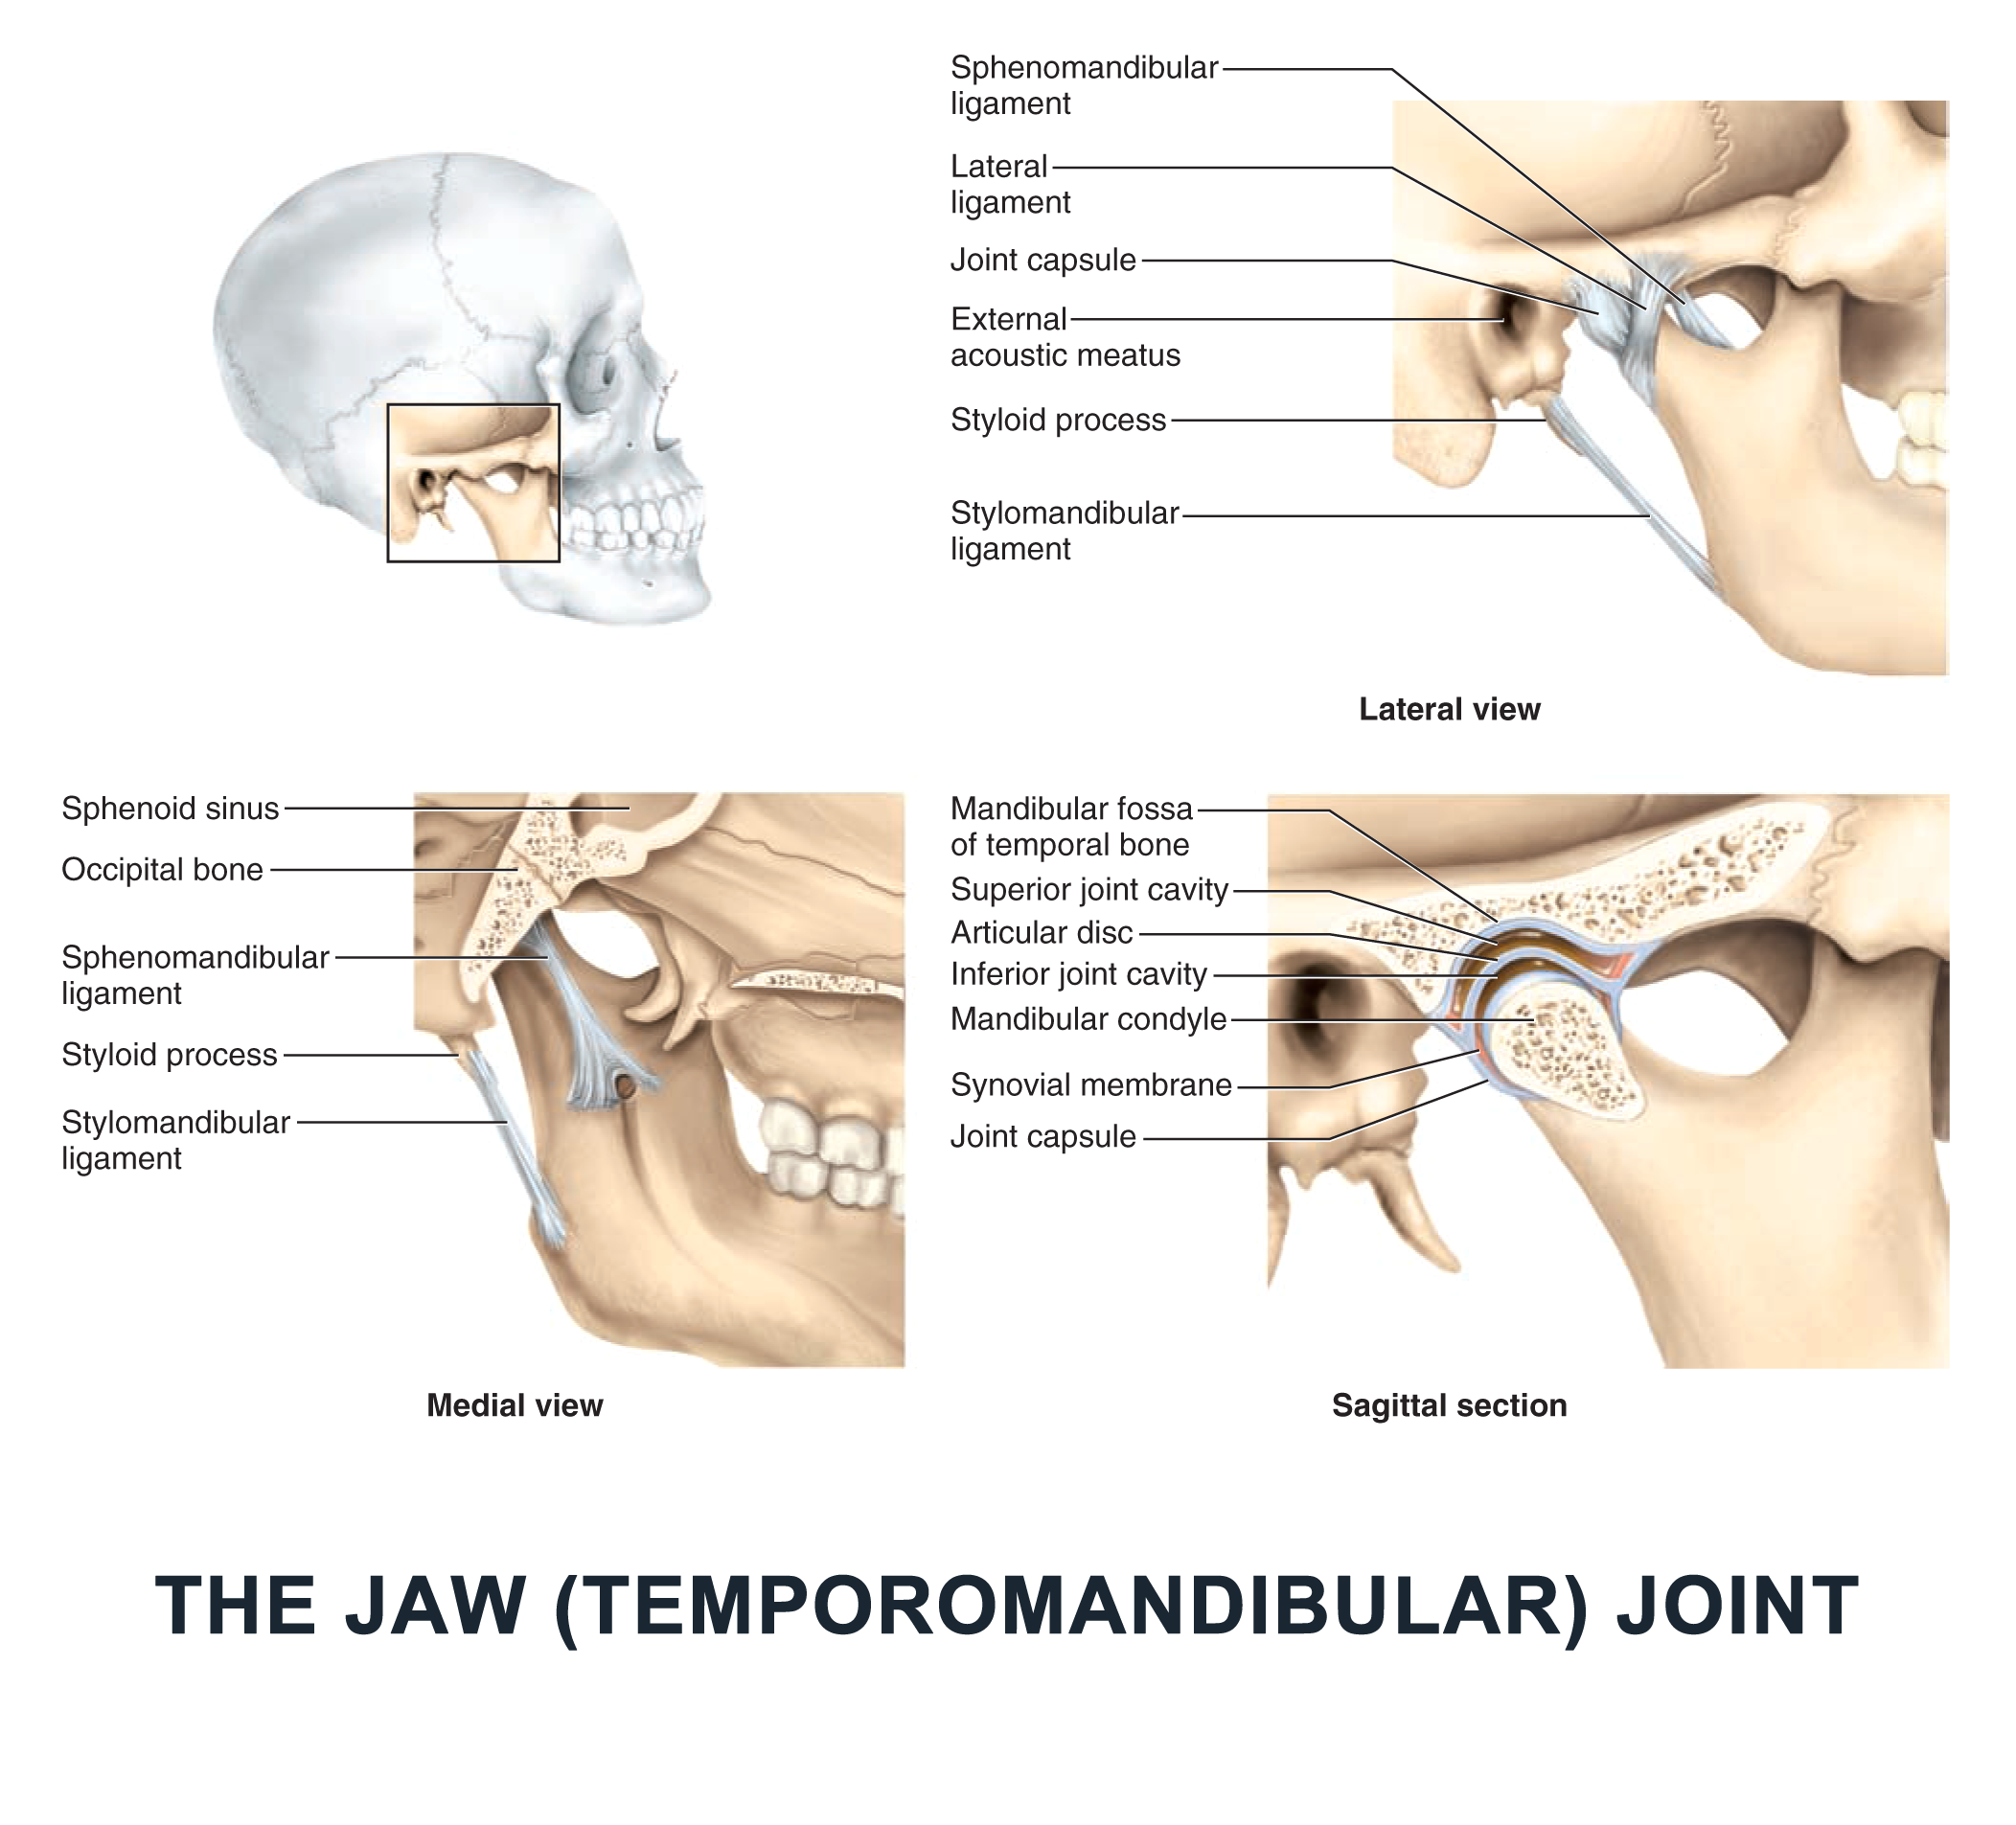 The Jaw (Temporomandibular) Joint - #anatomy images illustrations ...